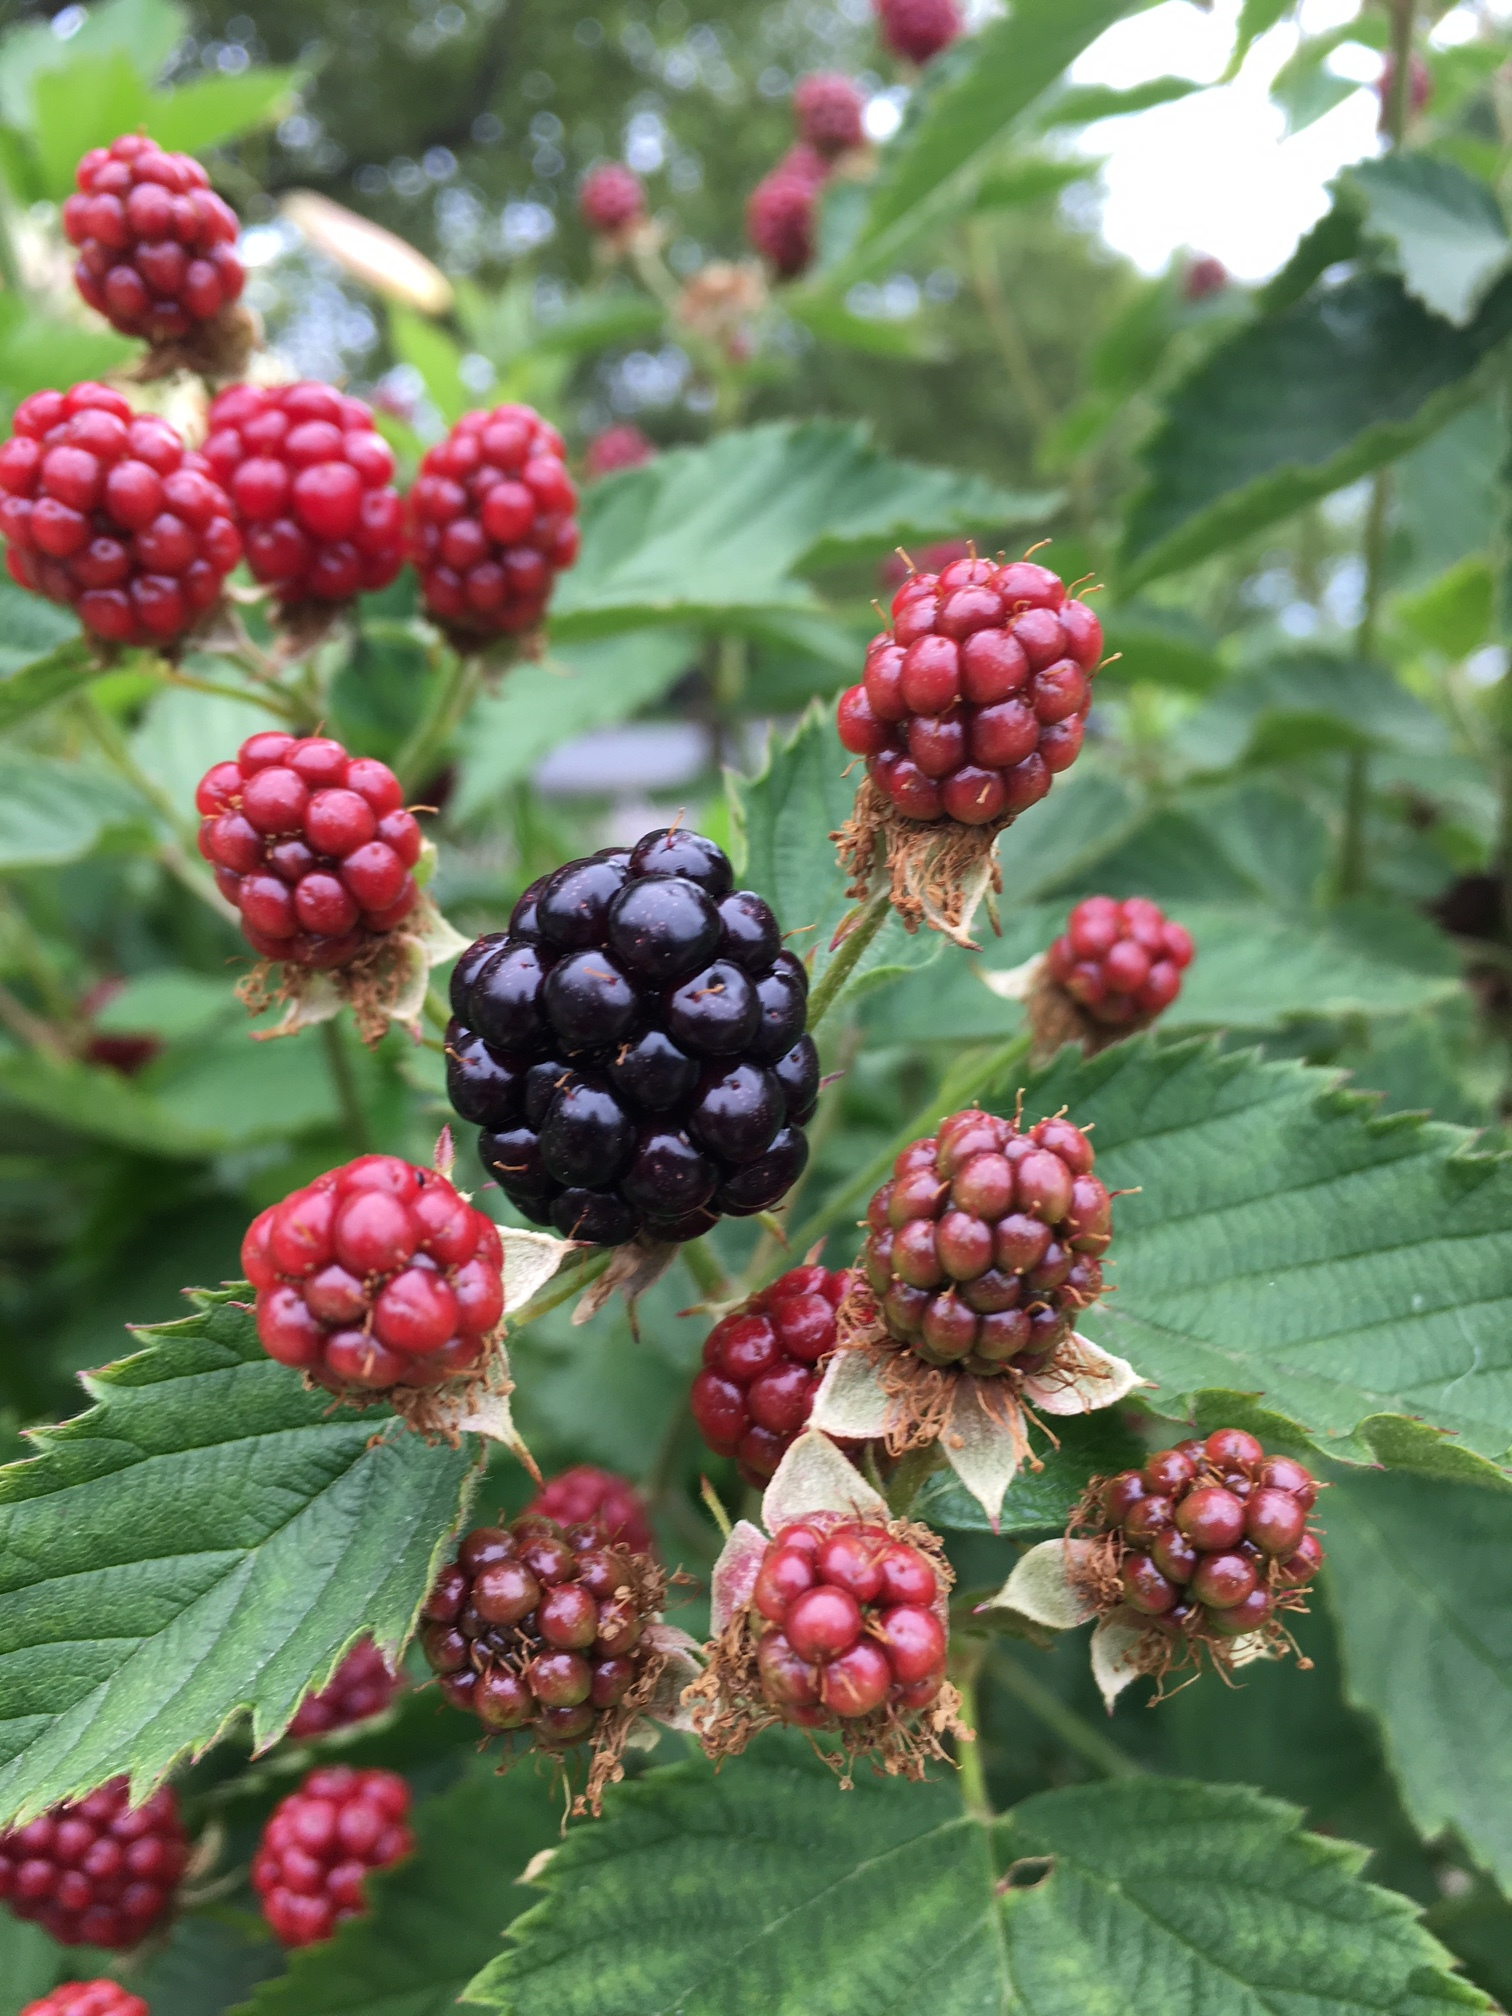 Blackberries from a neighbors yard are so tempting!